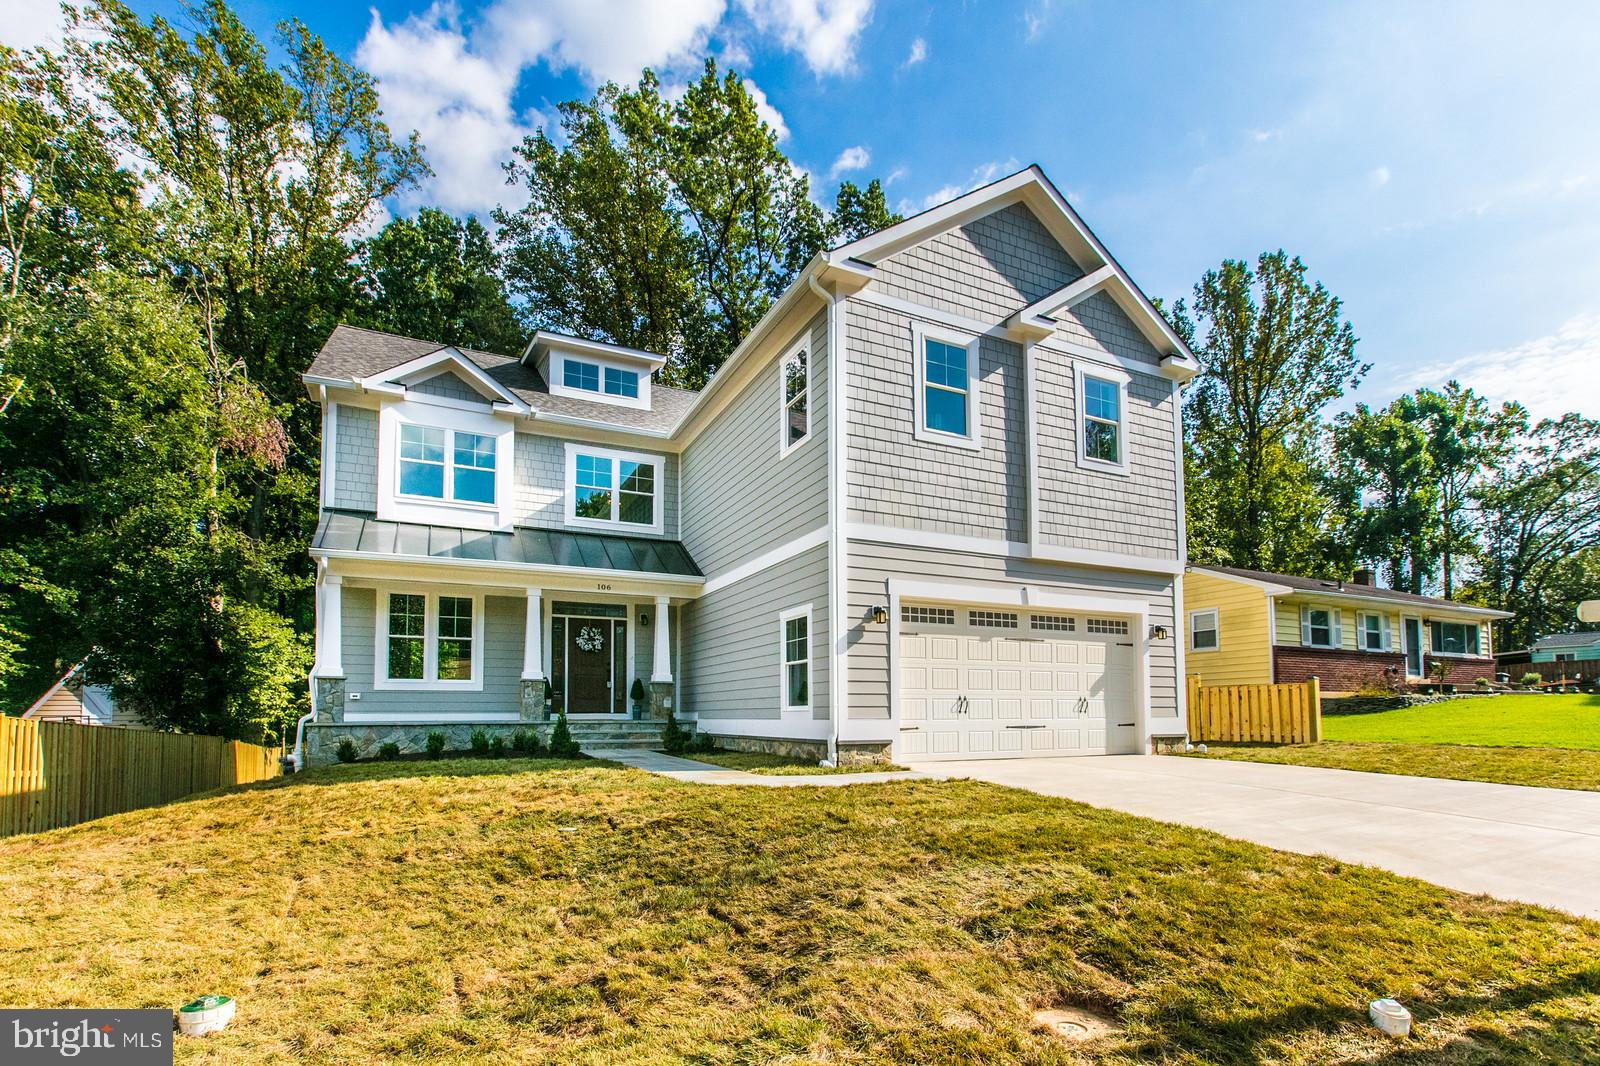 **Immediate Delivery** Welcome home to 106 Tapawingo Rd. SW in the heart of Vienna! This home features 6 bedrooms, 6 full, spa-like full bathrooms and 2 half bathrooms with just under 6,000 sq ft on 4 finished levels. Upper 3 levels have 4-inch red oak floors throughout with high ceilings and oversized custom trim. Main level features formal living room, dining room, family room with gas, stone surround fireplace, powder room, mud room with custom drop zone, home office and gourmet kitchen with KitchenAid appliances and 10-ft quartz waterfall island. Upper level has 4 bedrooms all with ensuite bathrooms, including the master bedroom and secondary master bedroom. Laundry on upper level makes it easily accessible. Attic level features private living suite with multiple closets and cozy reading nook. Lower level has 6th bedroom with ensuite bathroom, powder room, and expansive recreation room with wet bar and walk-up exit. Large, fenced backyard has Trex deck with natural gas hookup for grilling enthusiasts. 2-car garage has 220-volt outlet for electric car charging. Home is heated/cooled by 2 Carrier units controlled by 4 zones. Exterior siding by James Hardie. This is not your average new home, no expense was spared during the design and build process!